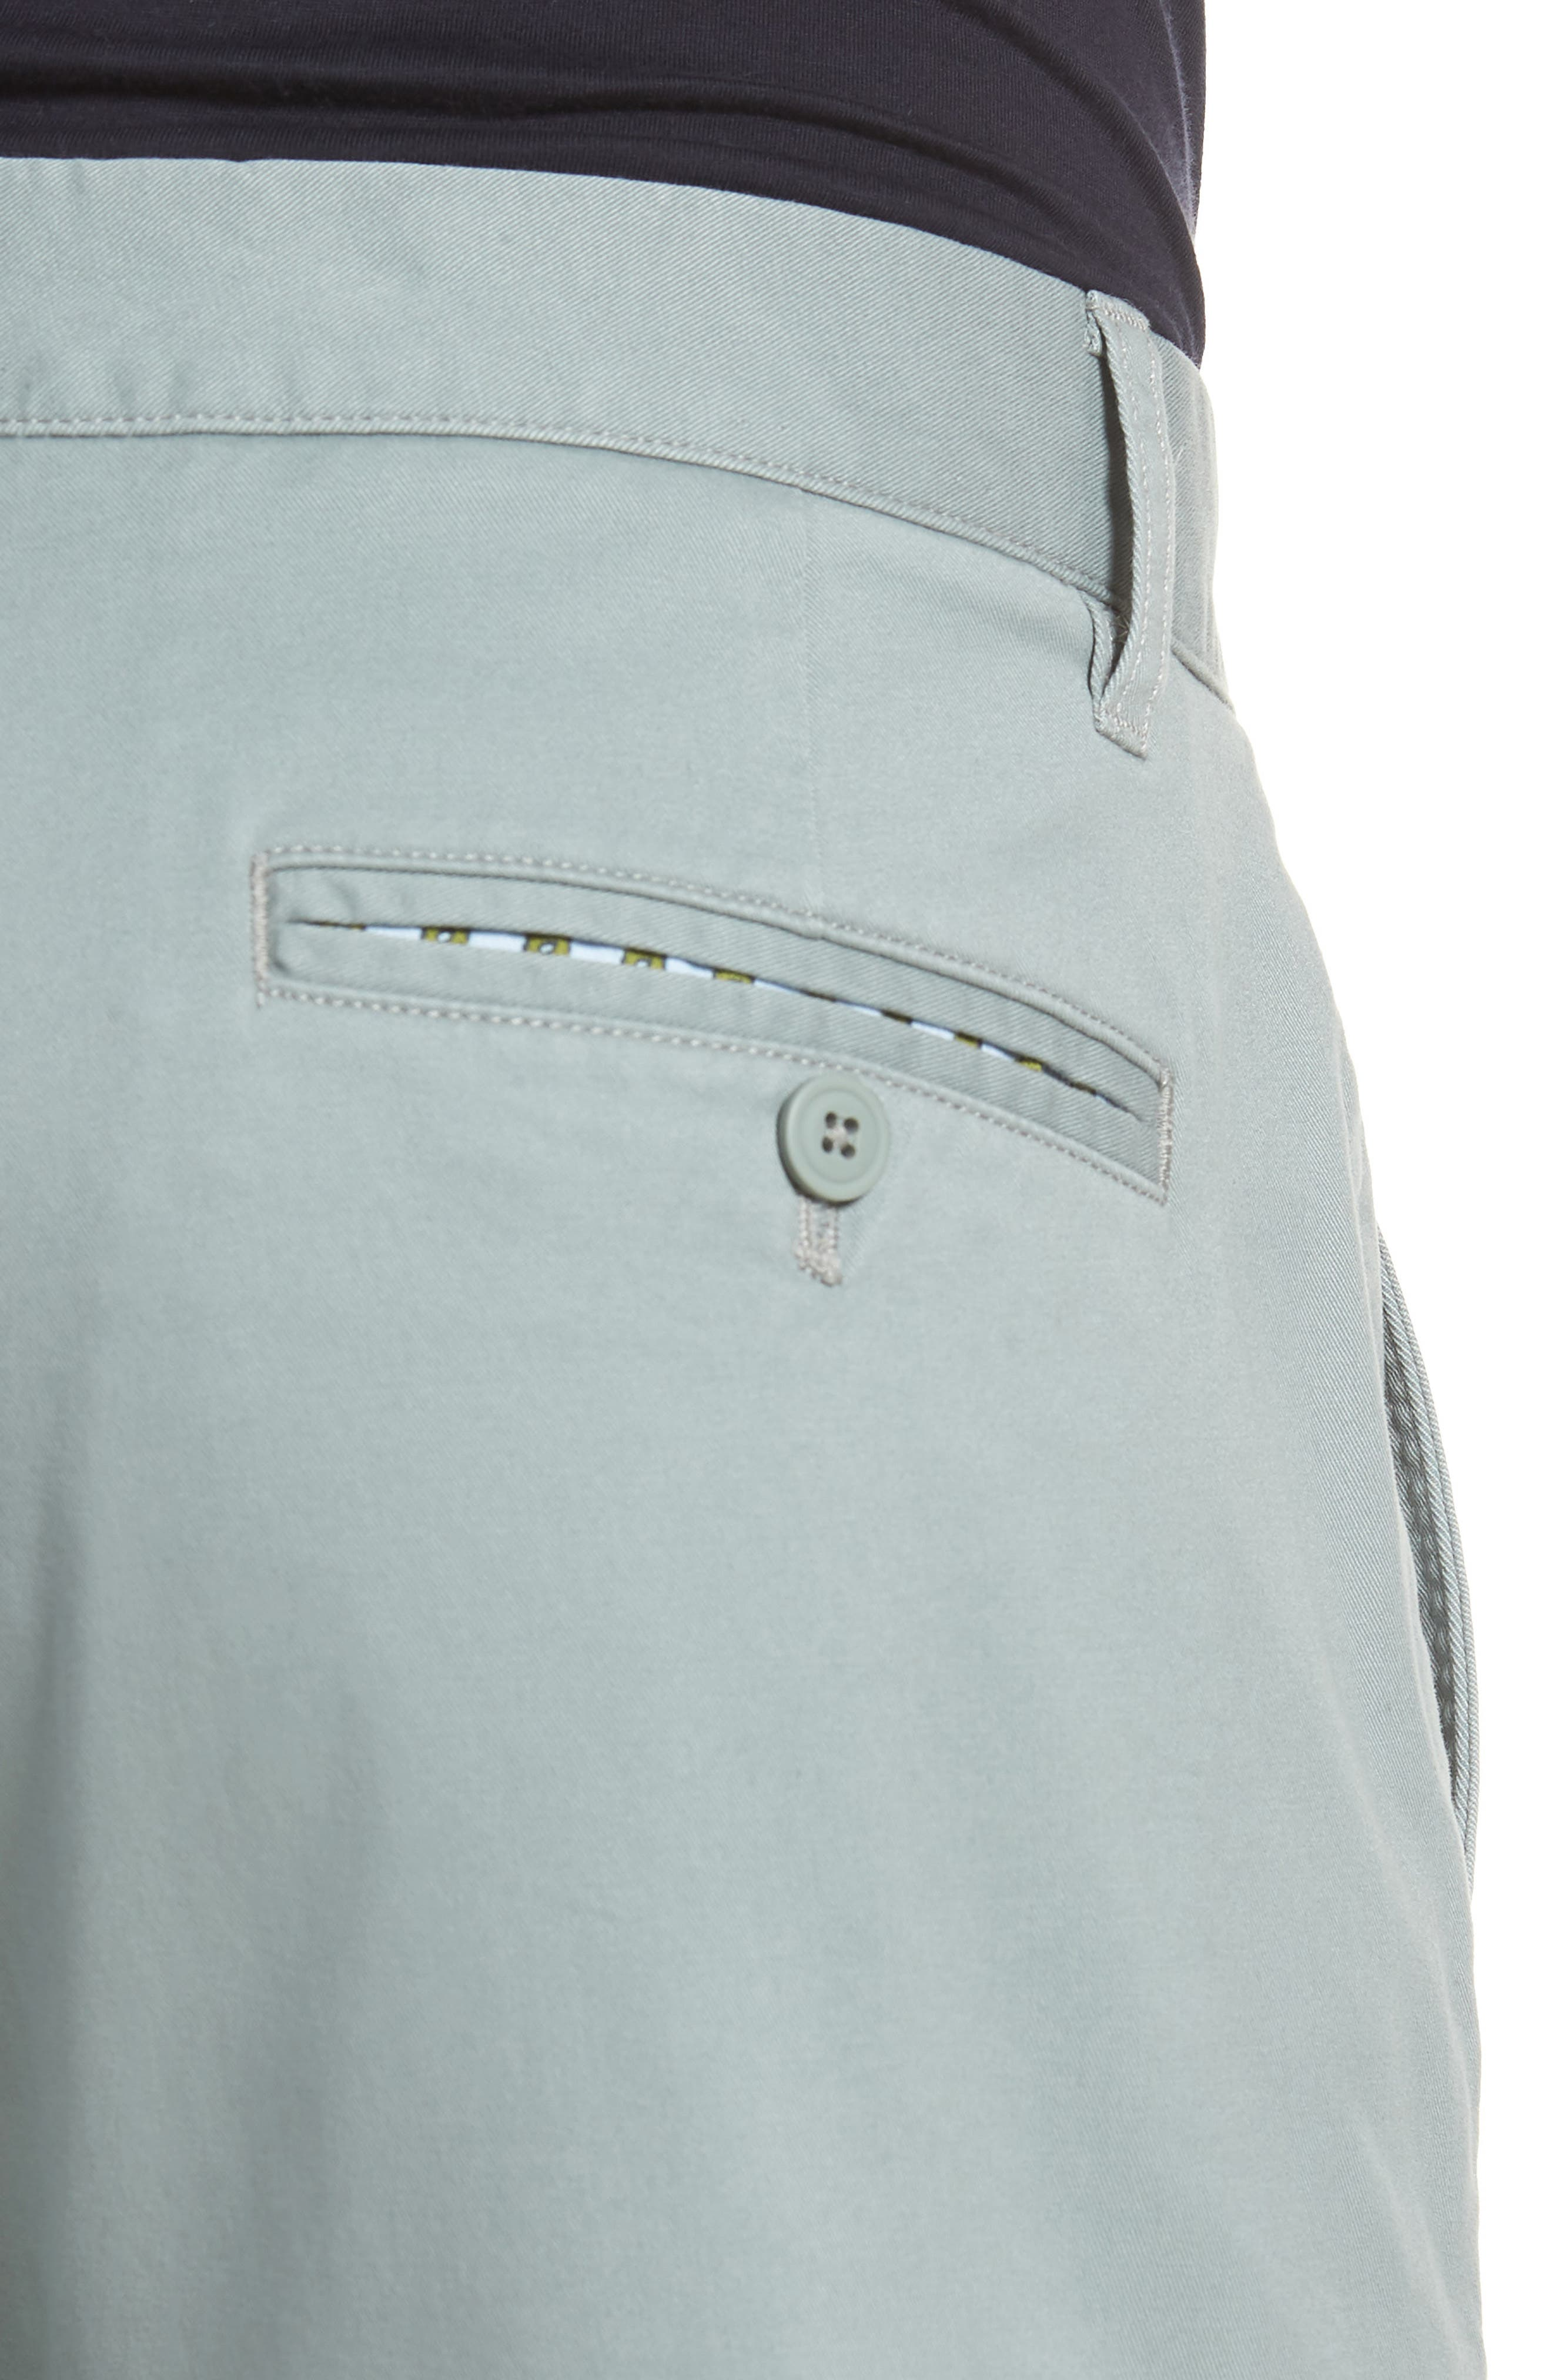 Tailored Fit Washed Stretch Cotton Chinos,                             Alternate thumbnail 5, color,                             Rye Grass